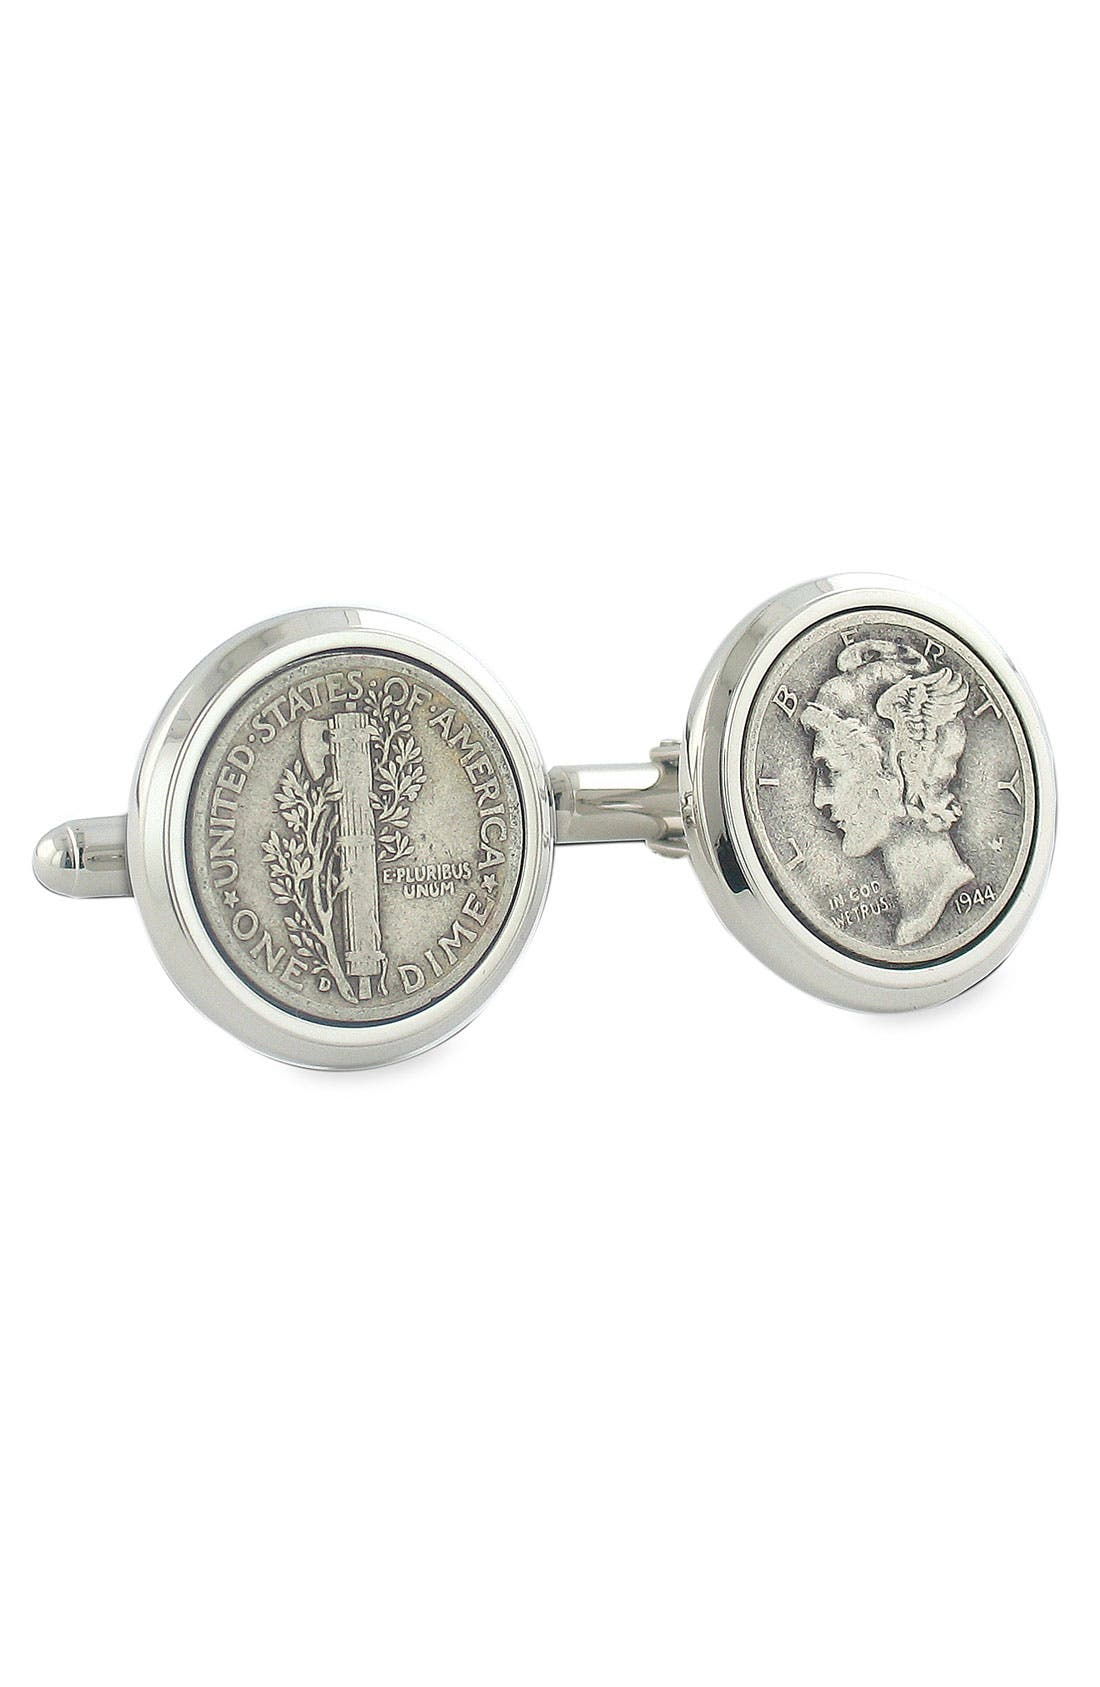 David Donahue Mercury Dime Cuff Links